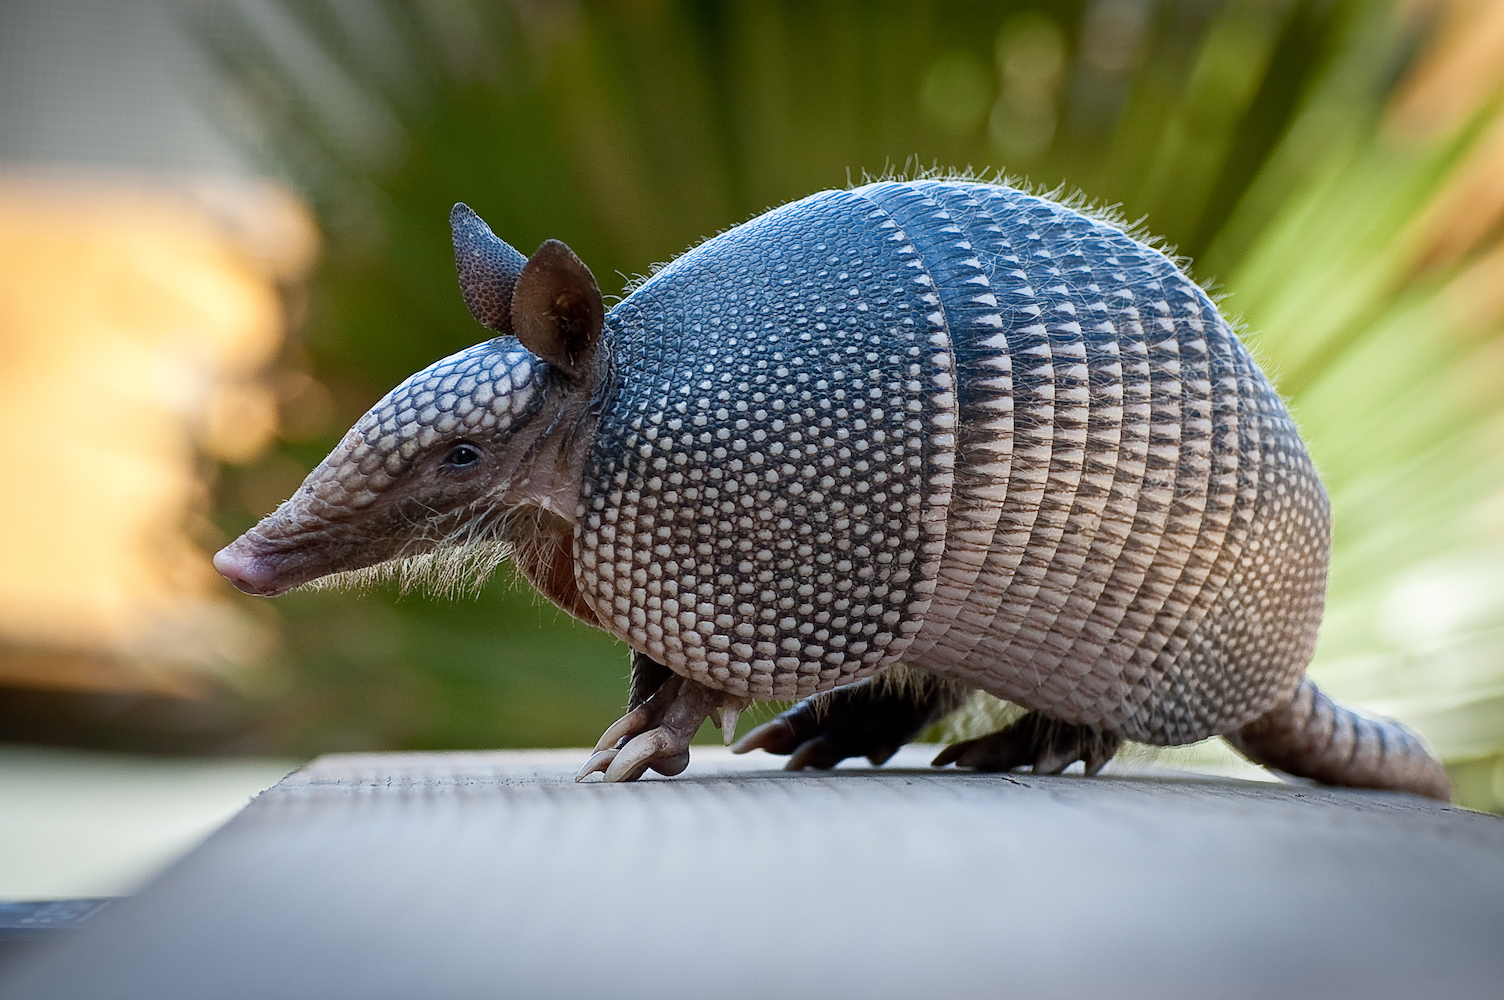 62 percent of armadillos in the Brazilian Amazon have leprosy and people in that region face an increased risk of contracting the disease.